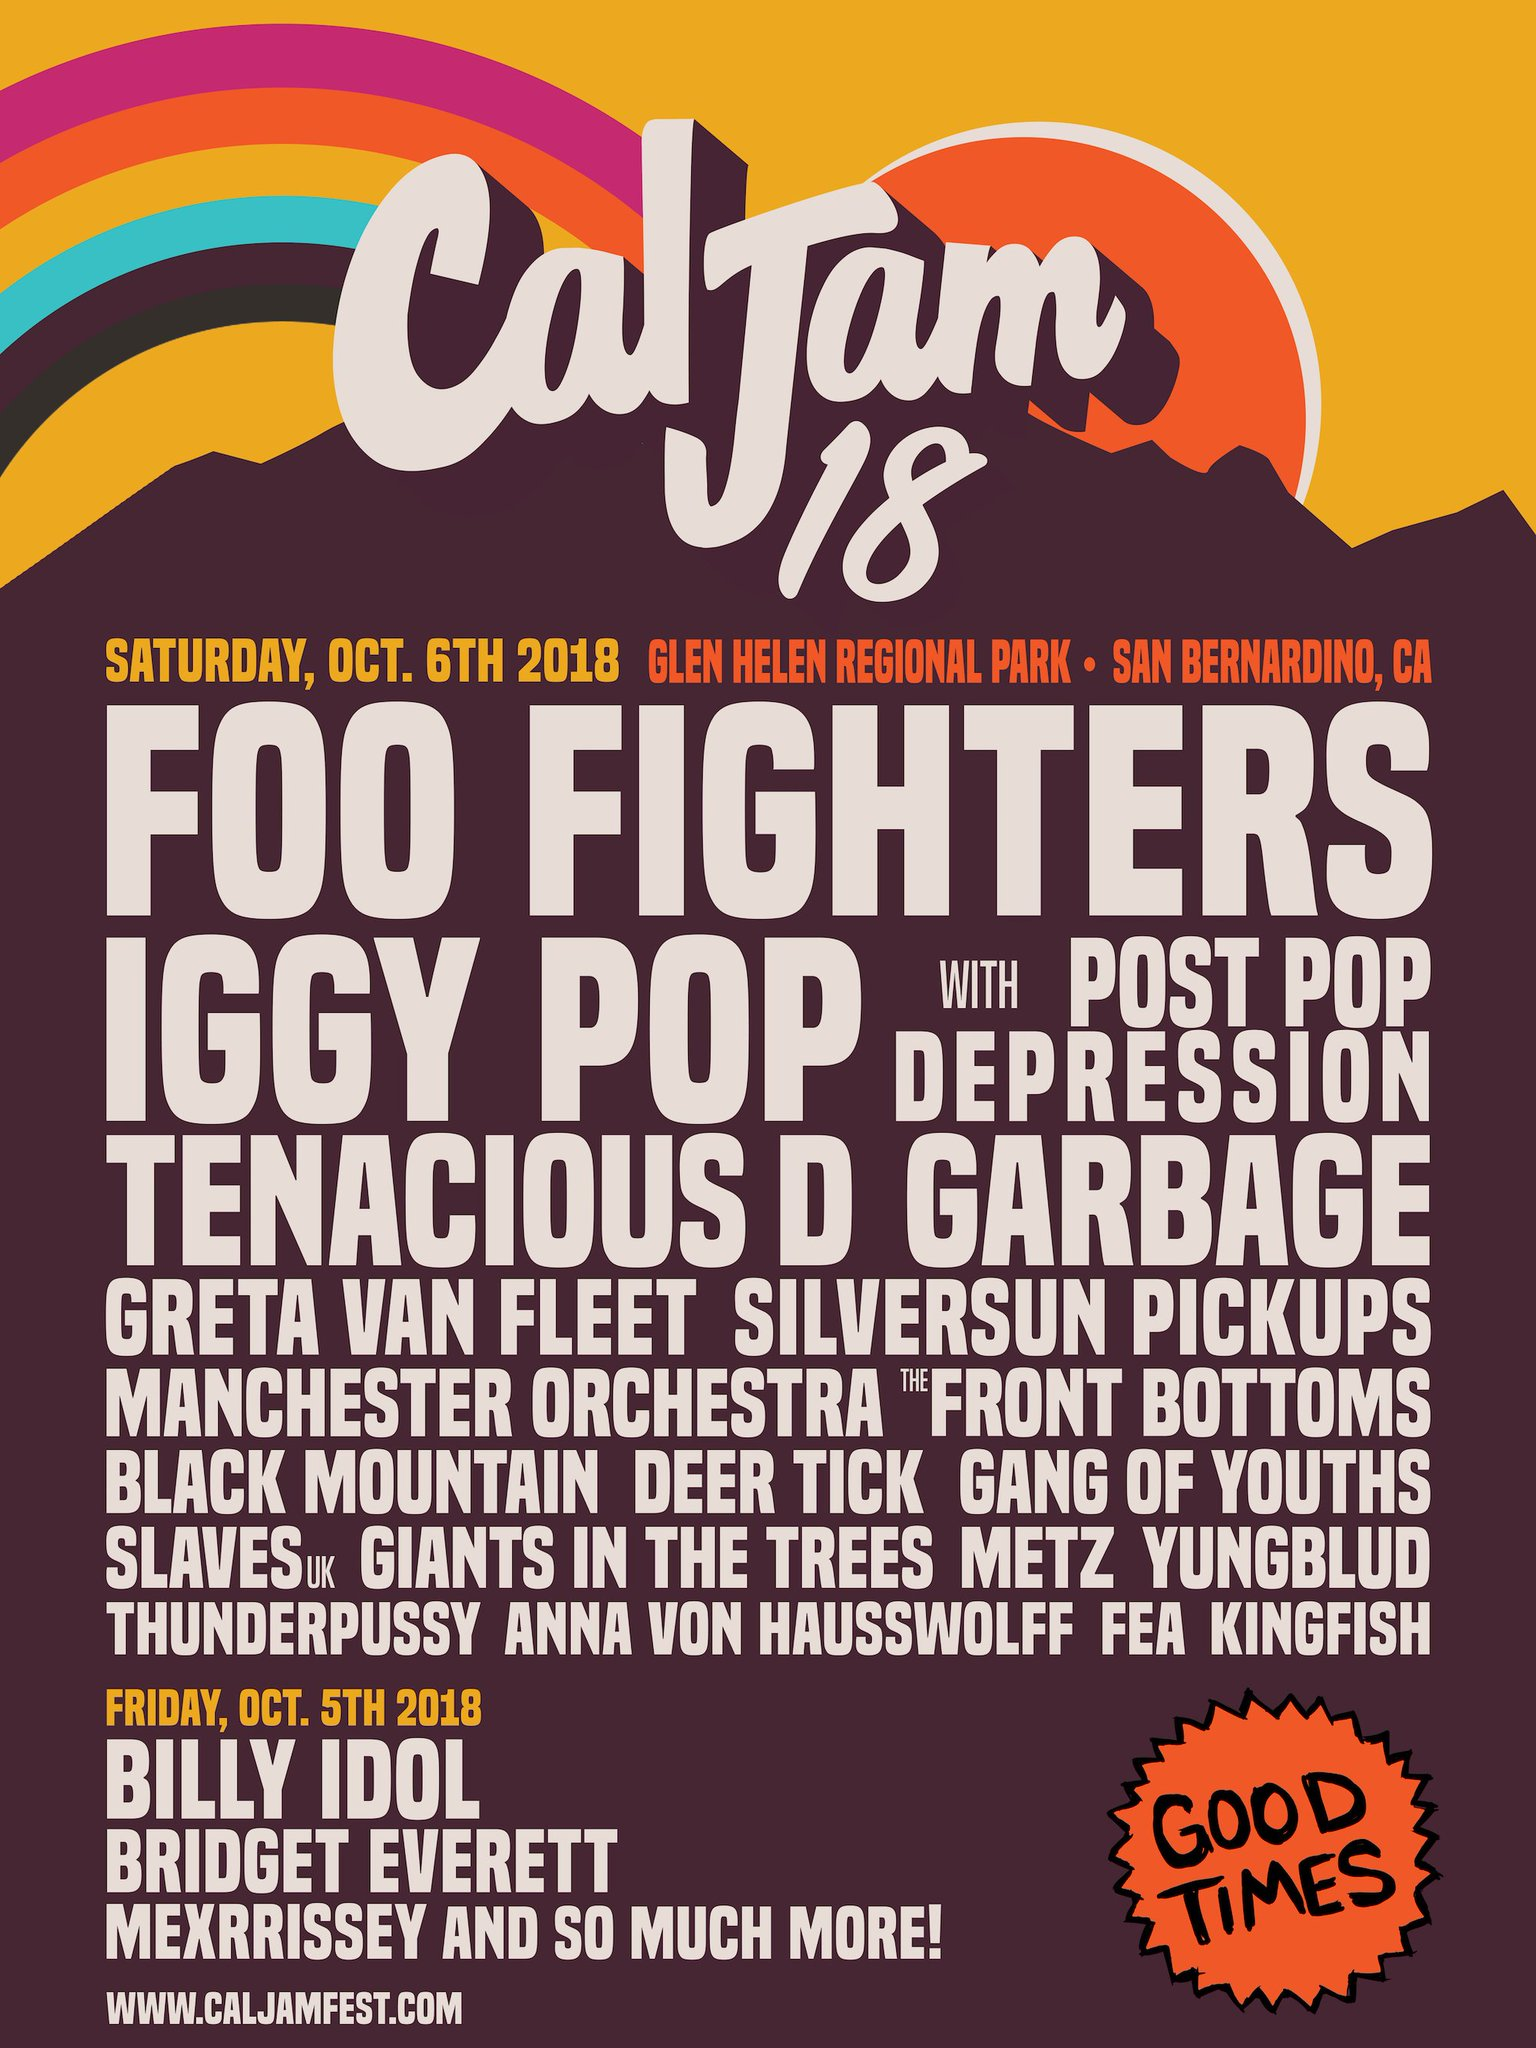 .@FooFighters announce @IggyPop, @RealTenaciousD, @Garbage, and more for Cal Jam 2018 https://t.co/QZhHHXYocV https://t.co/PUL2JCmXdR